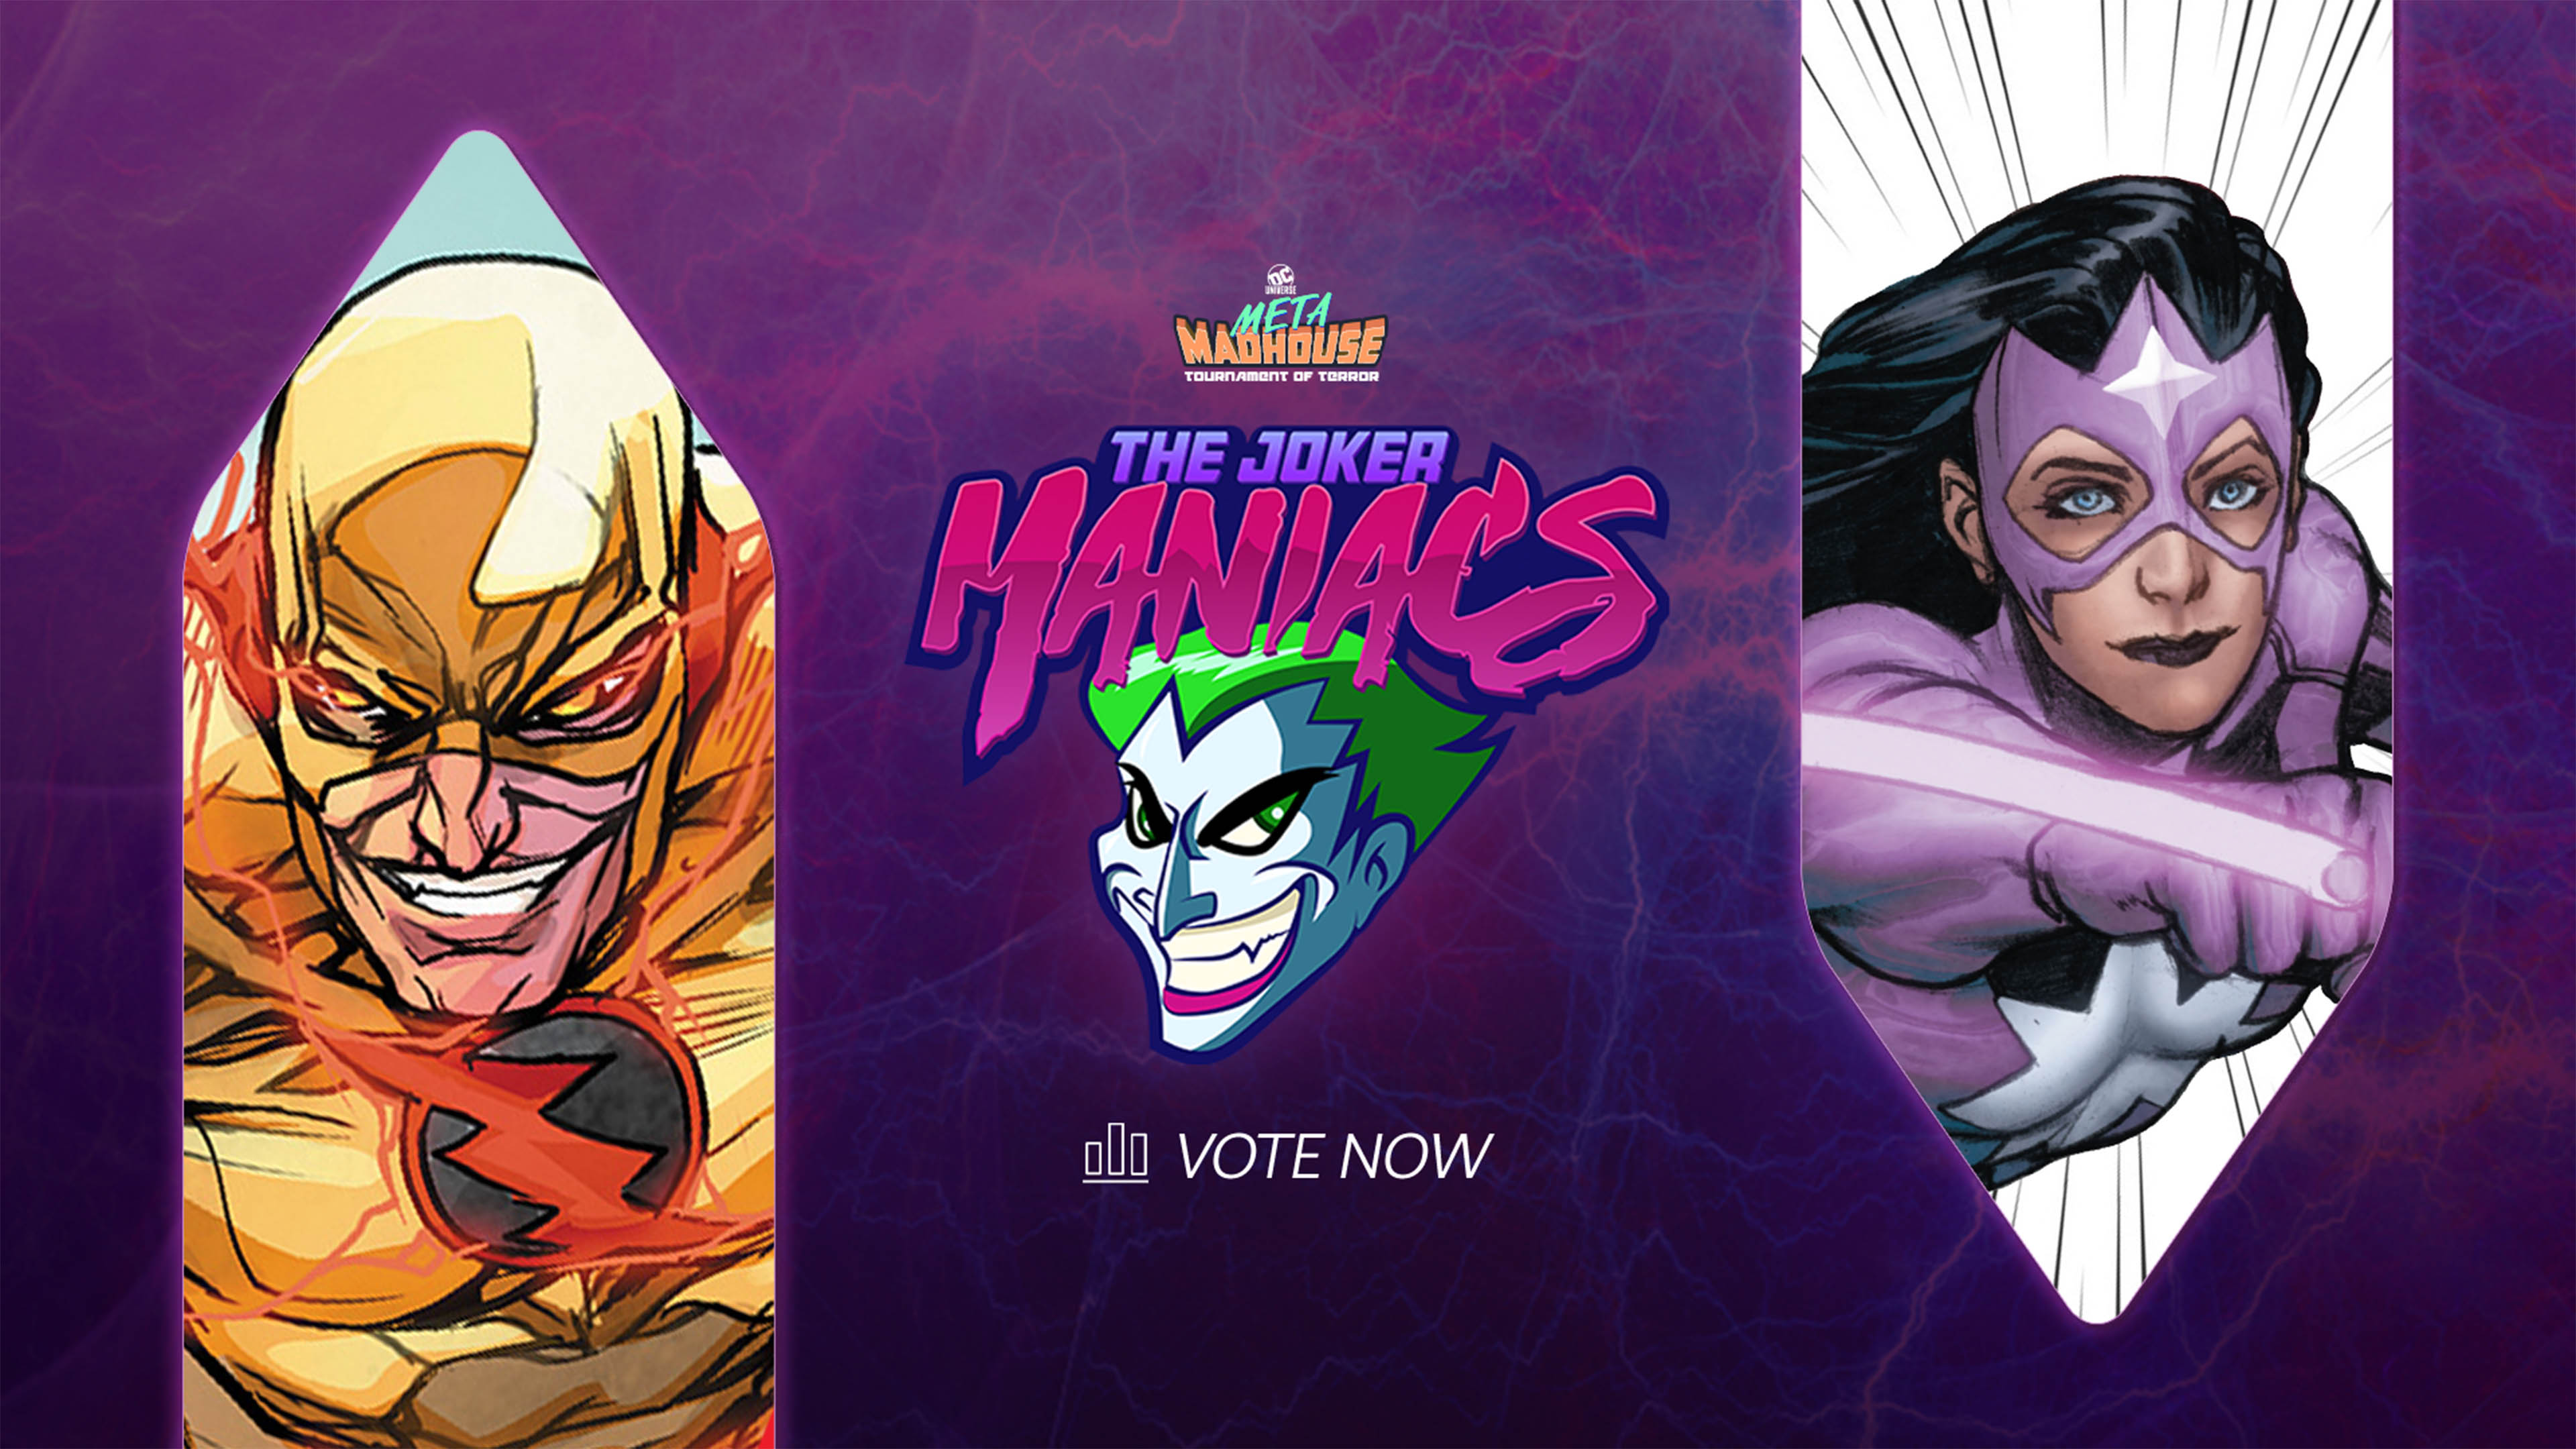 MM_JOKER VOTE_2playershero-c2.jpg